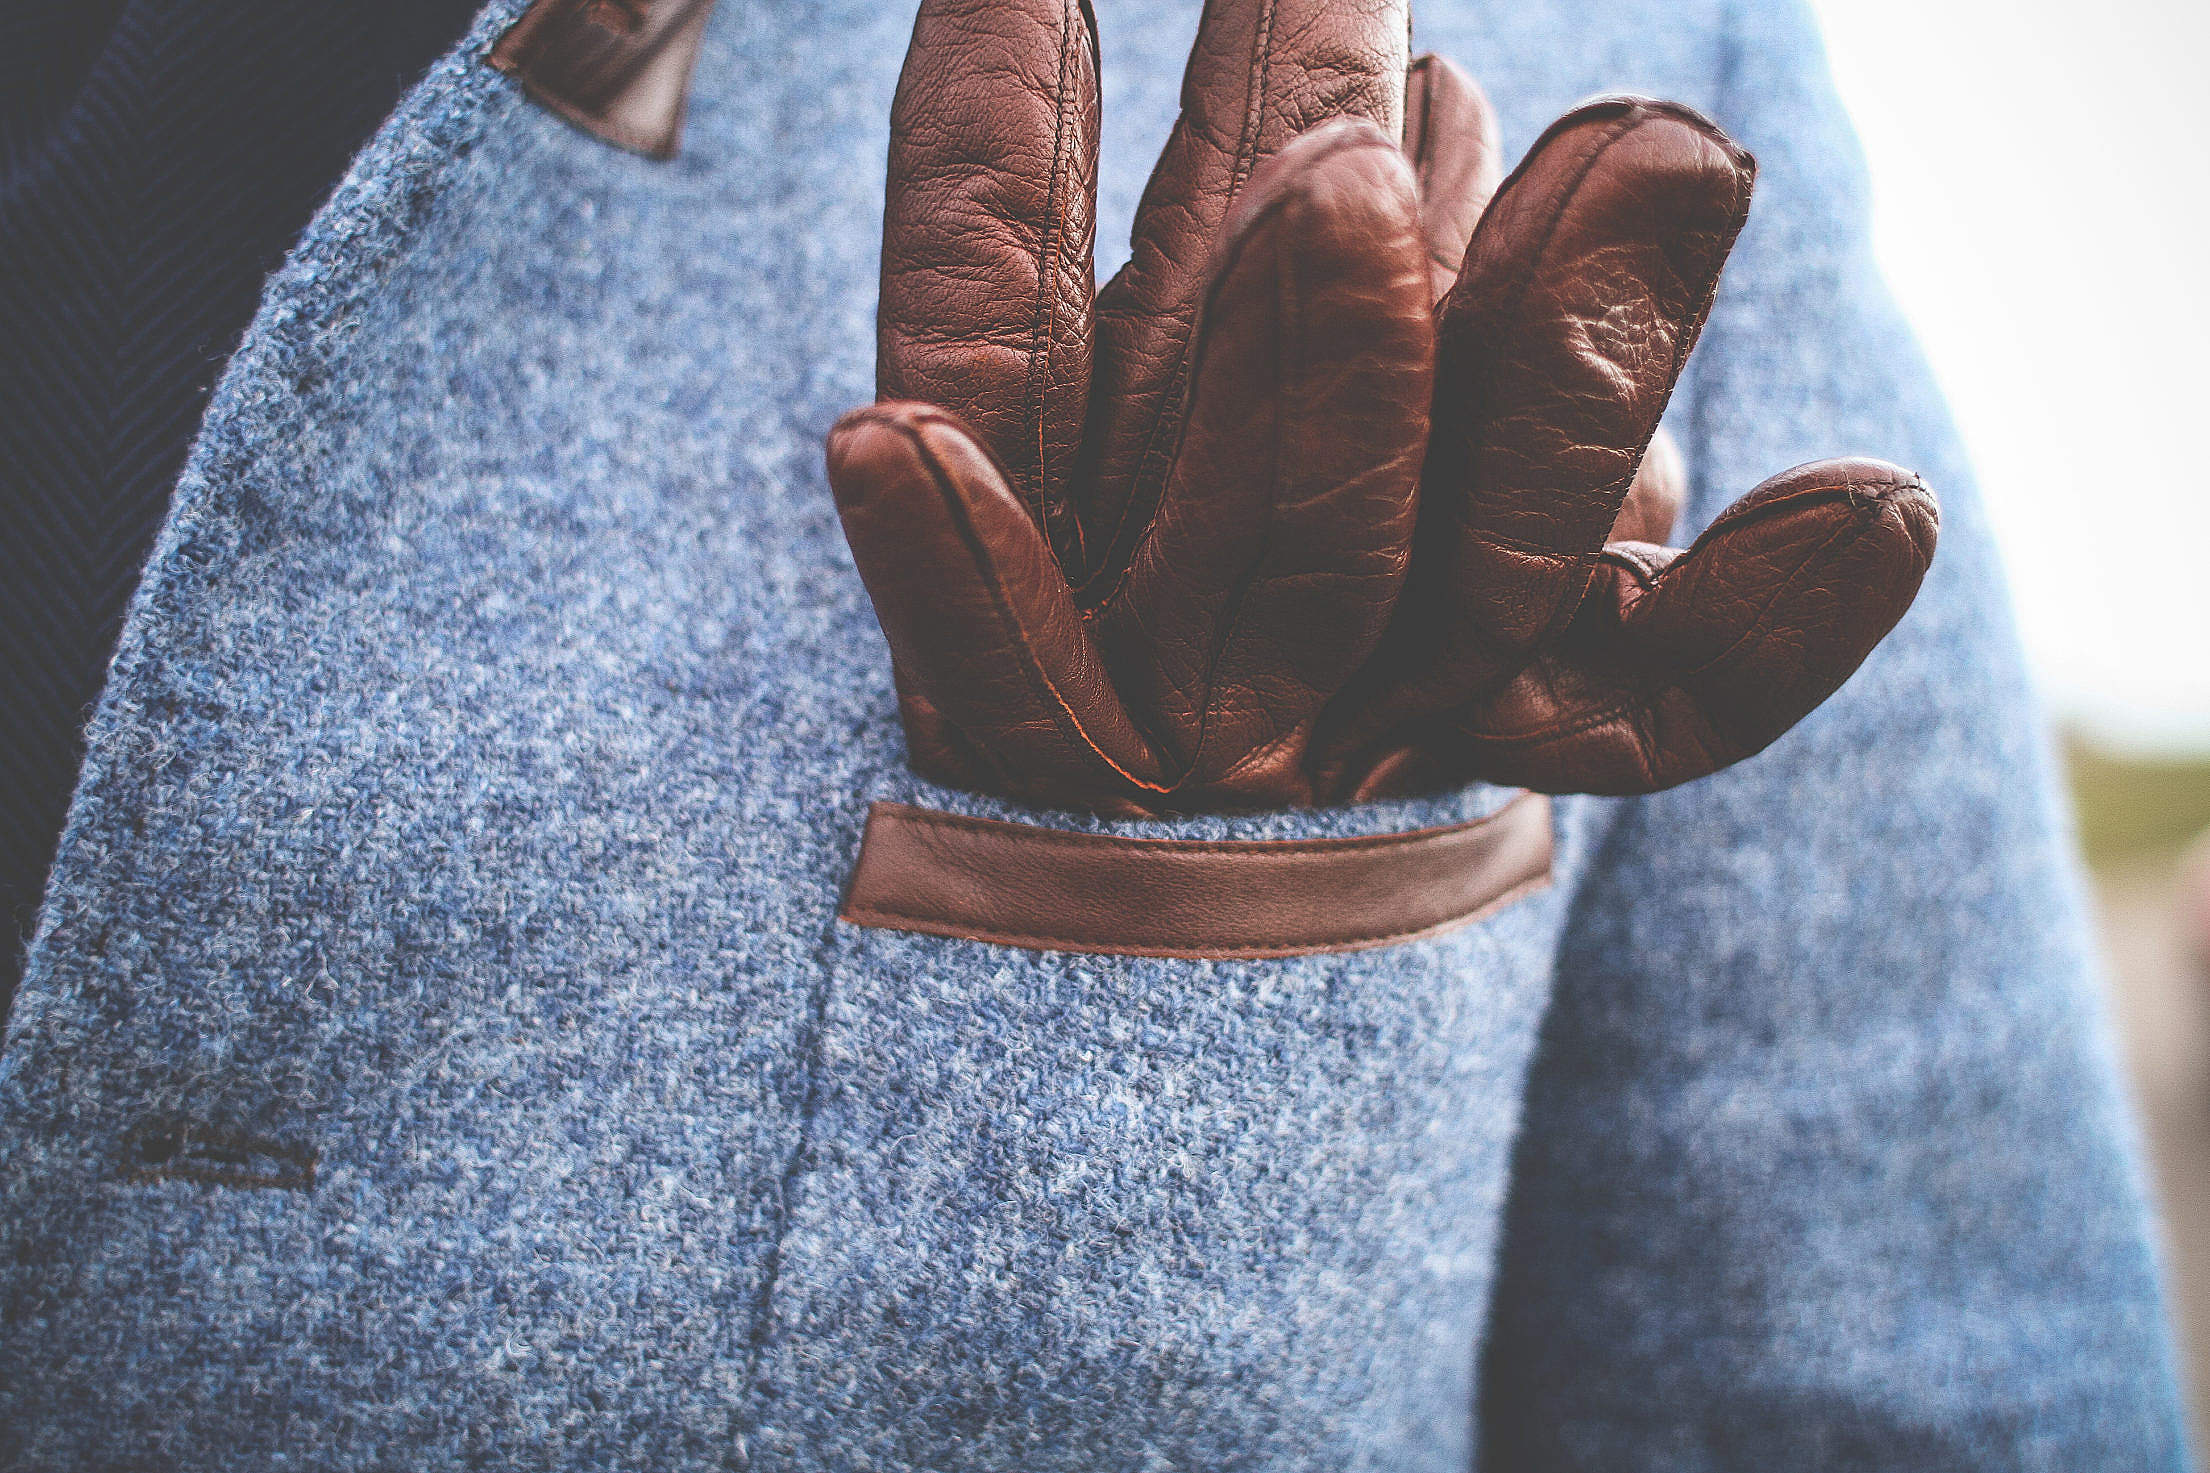 Gentleman's Driving Leather Gloves Free Stock Photo